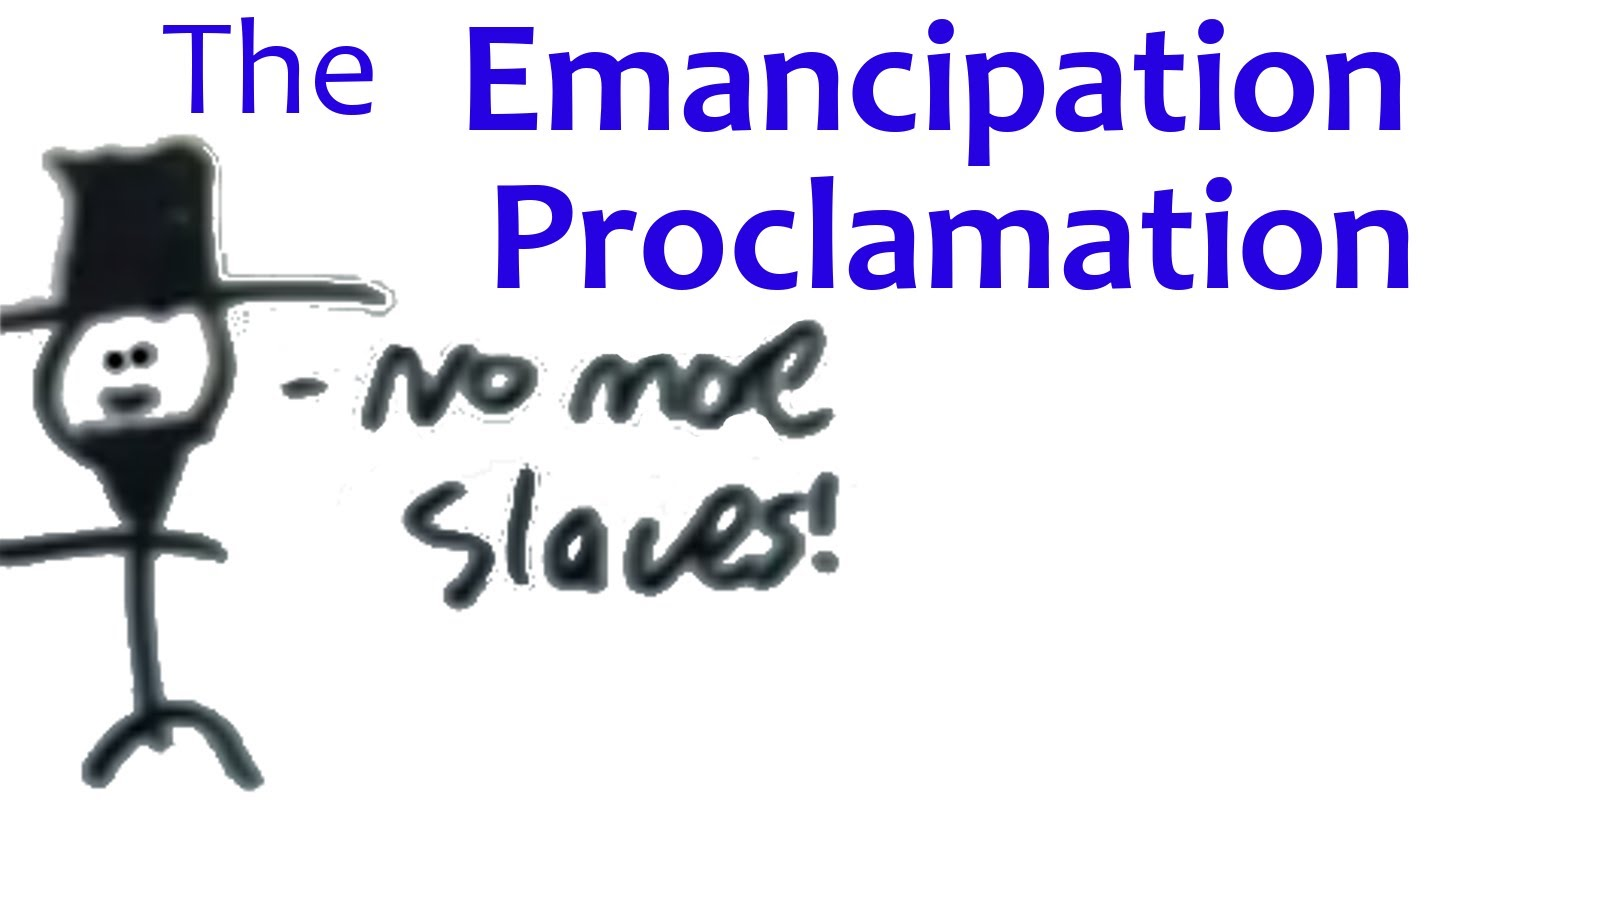 The Emancipation Proclimation